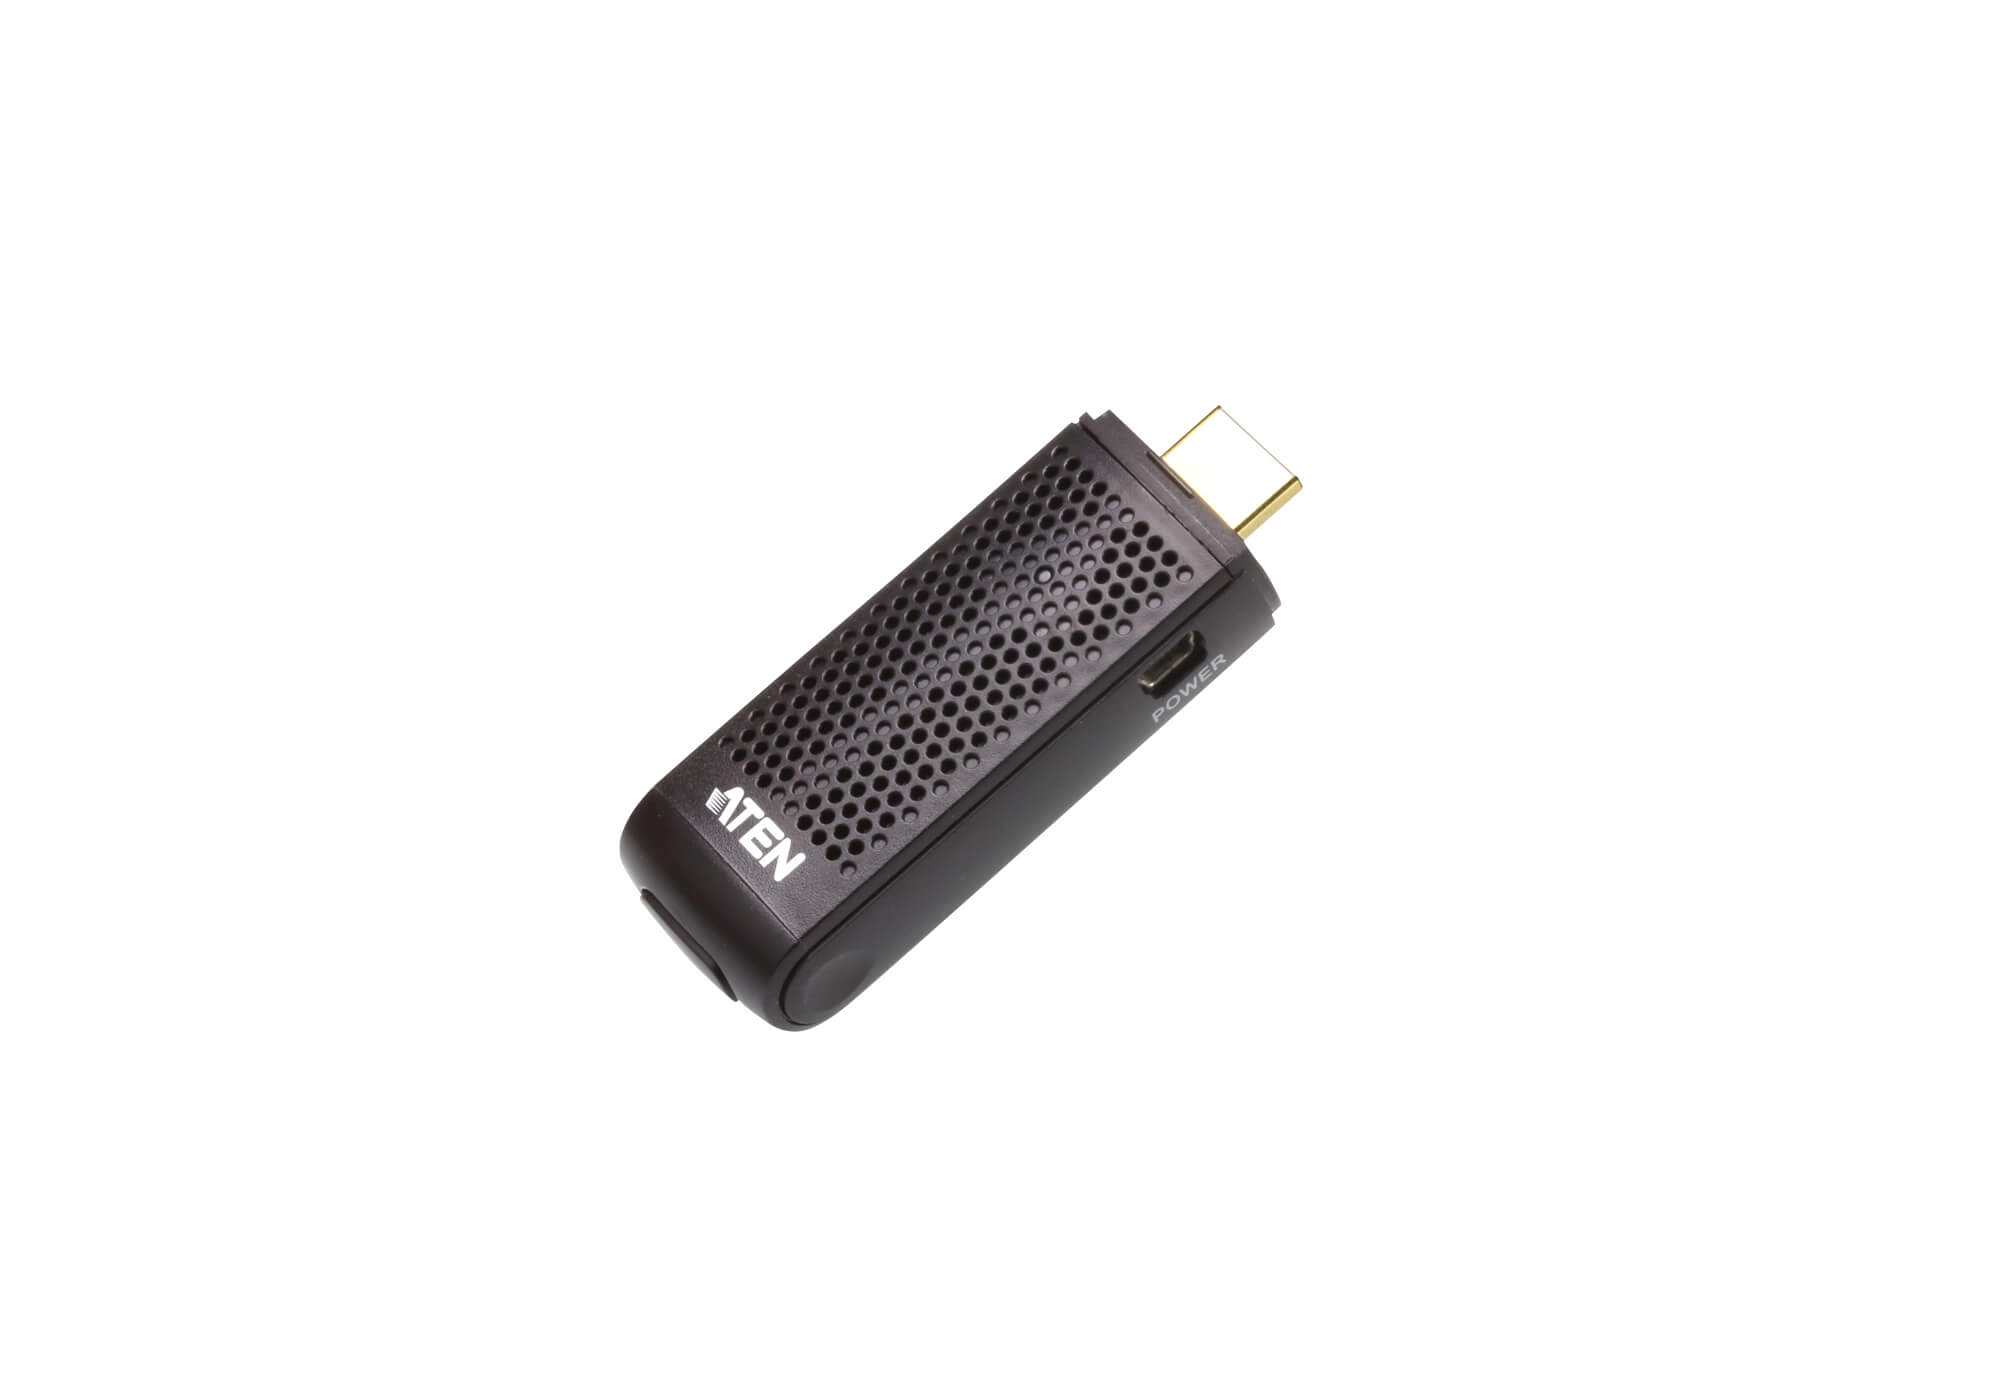 HDMI Dongle Wireless Extender (1080p 10 m)-5